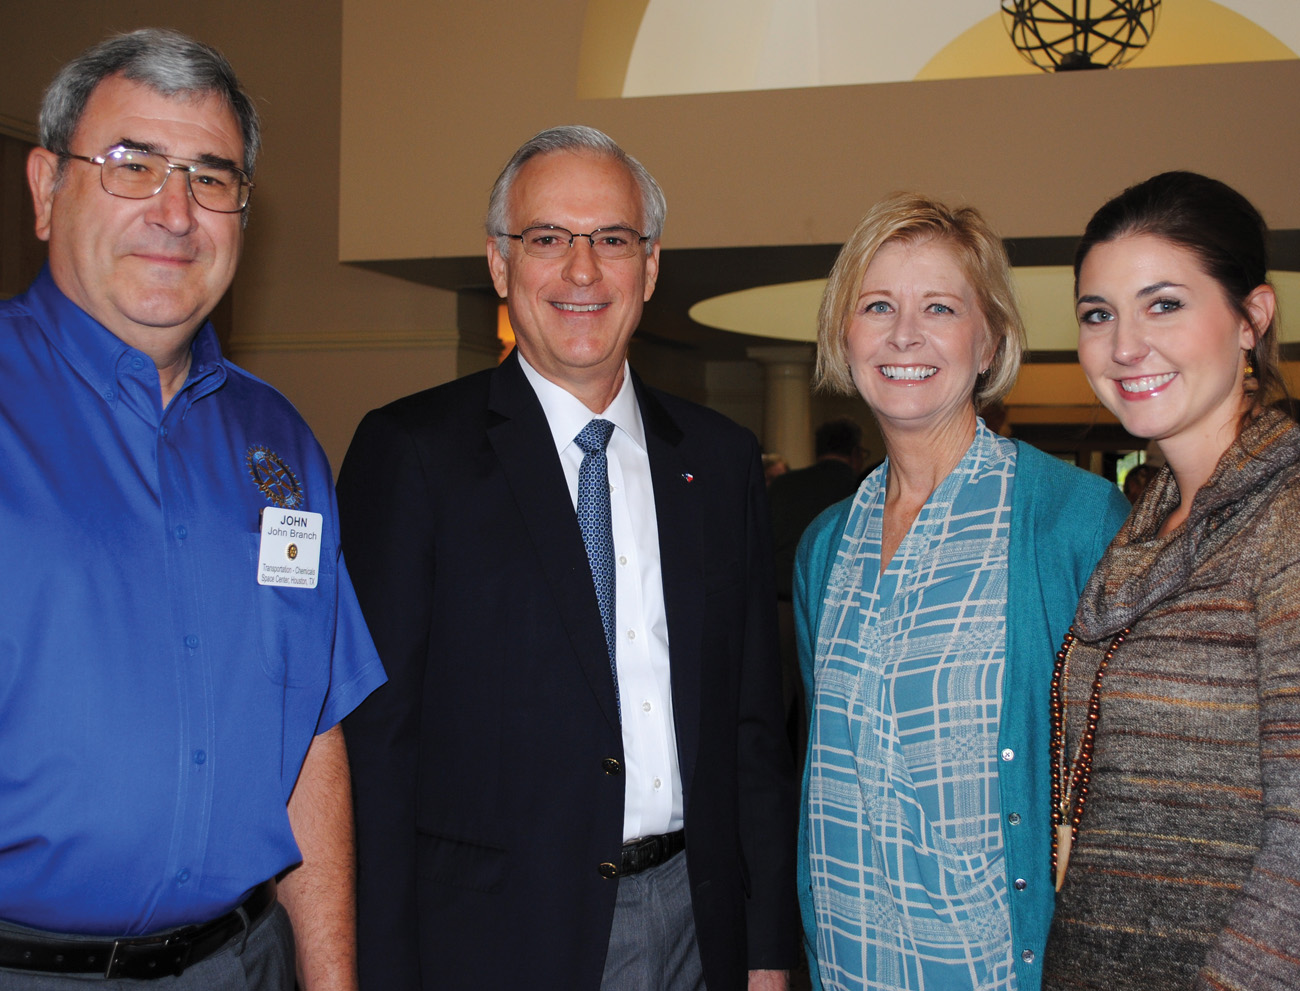 Judge Robert Eckels, second from left, arrives at the Space Center Rotary Club luncheon at Bay Oaks Country Club in Clear Lake, where he is welcomed by President John Branch, from left, Past President Sheryl Berg and Lauren Laake of Councilman Dave Martin's office. Photo by Mary Alys Cherry